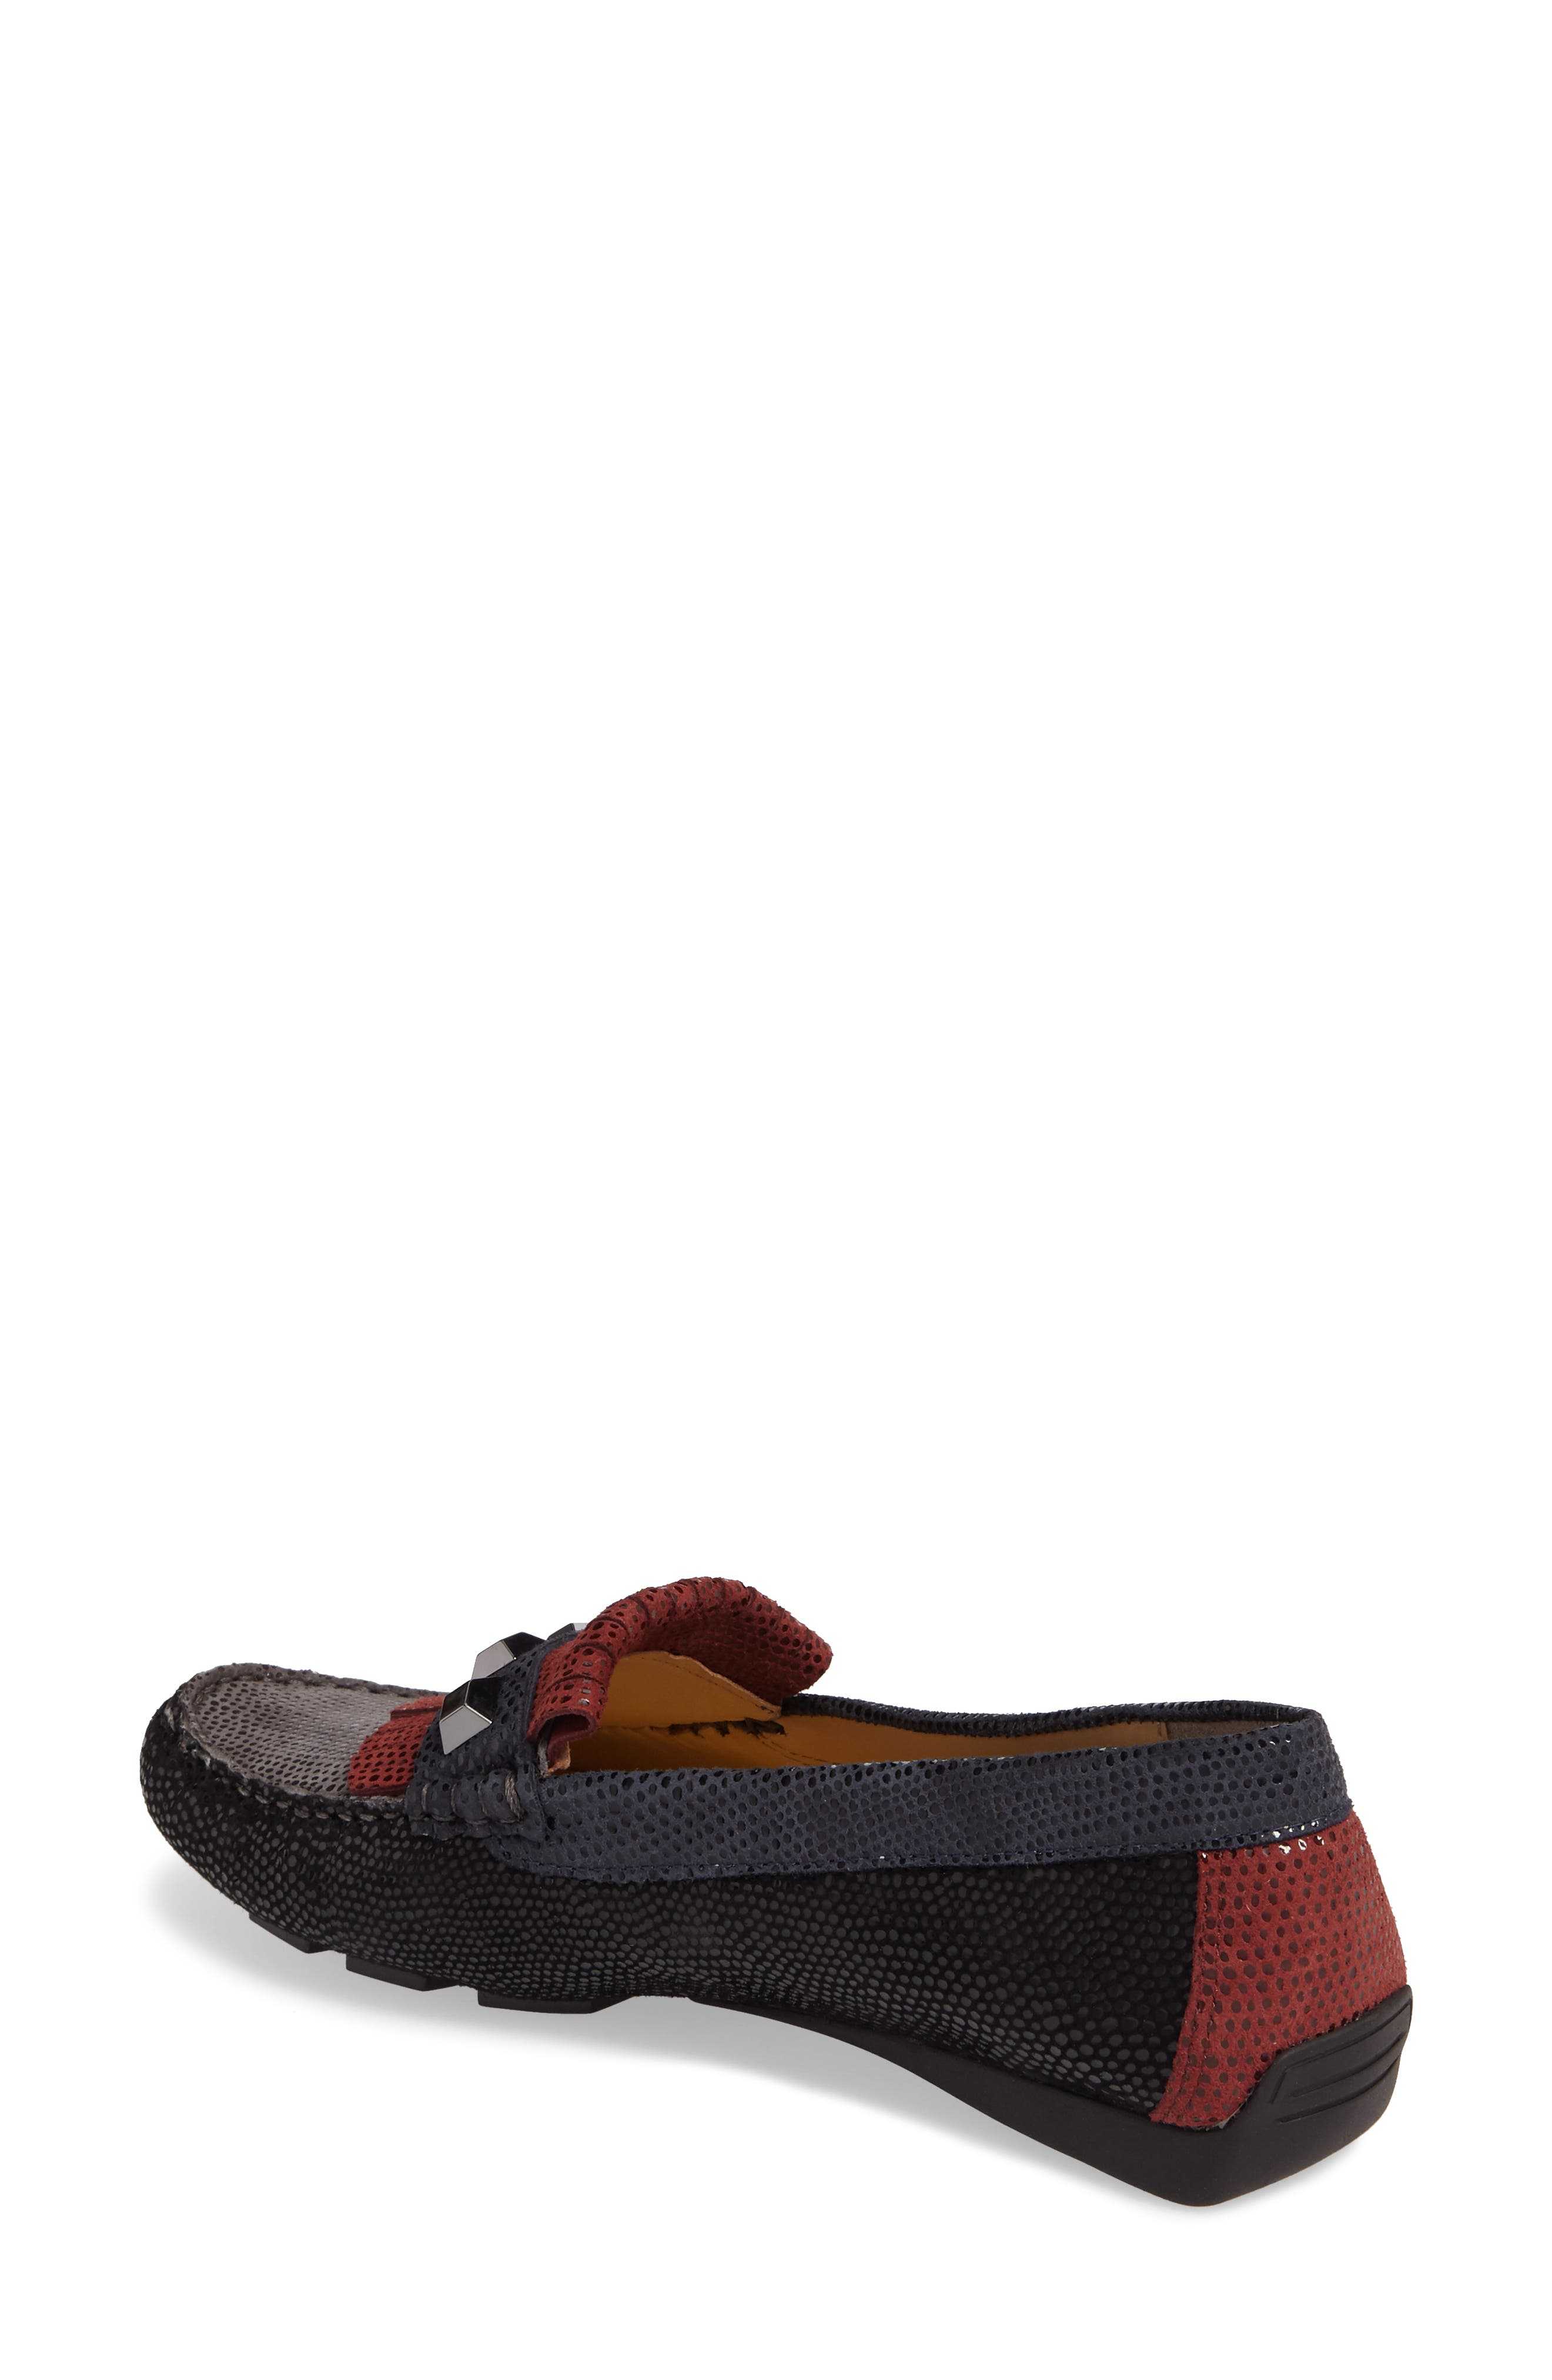 Rumble Loafer,                             Alternate thumbnail 2, color,                             001